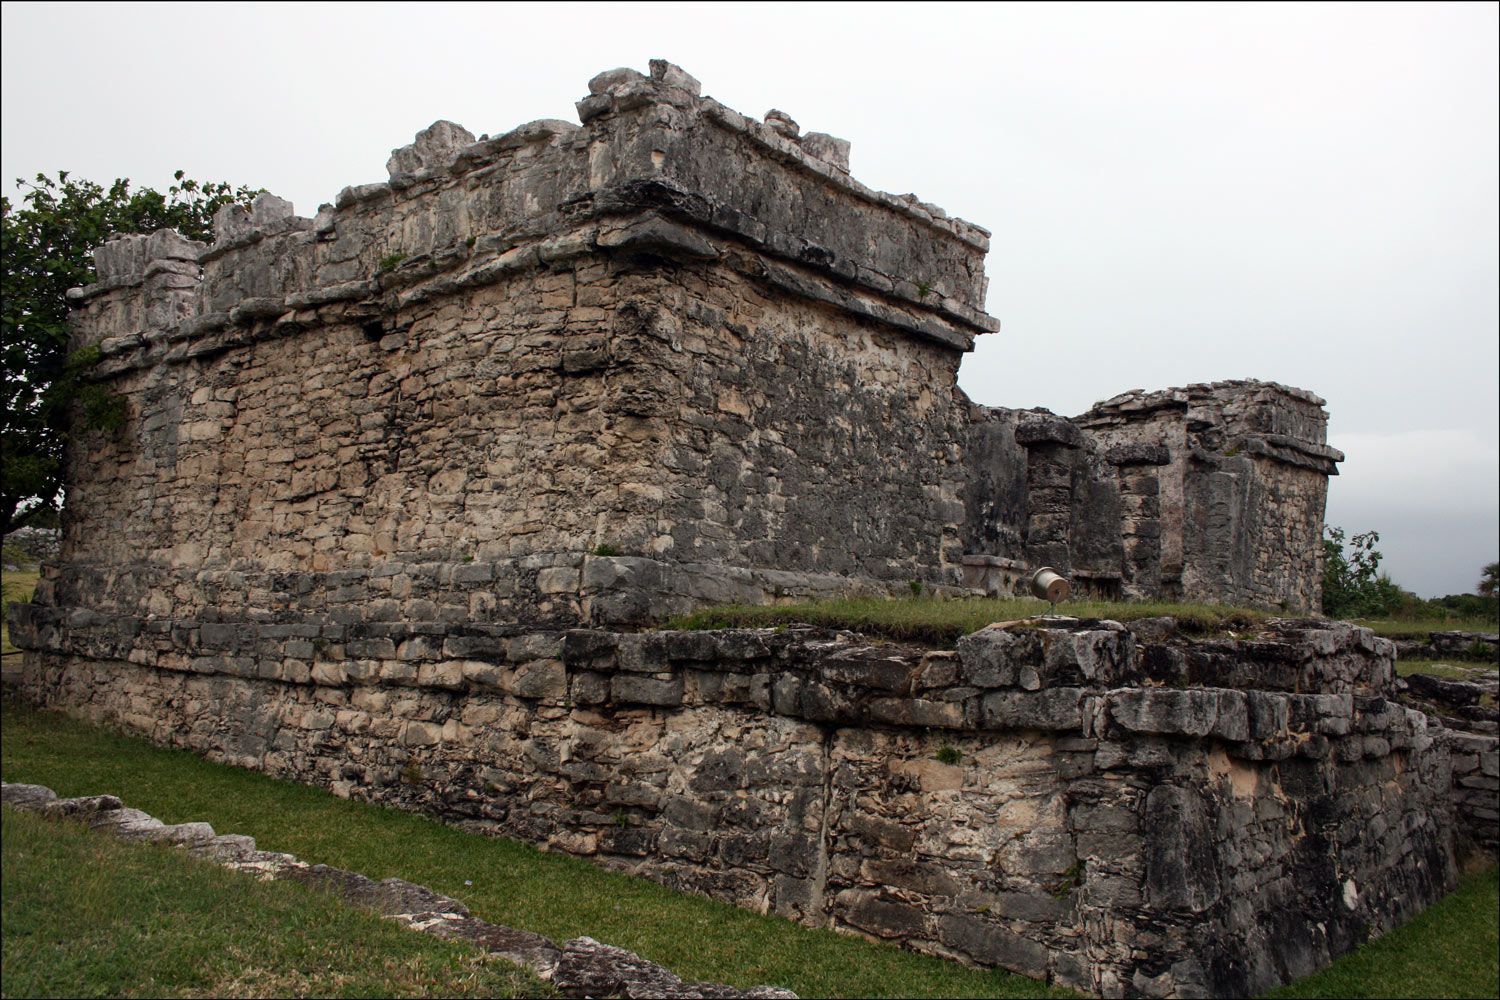 Structure 34 in Tulum